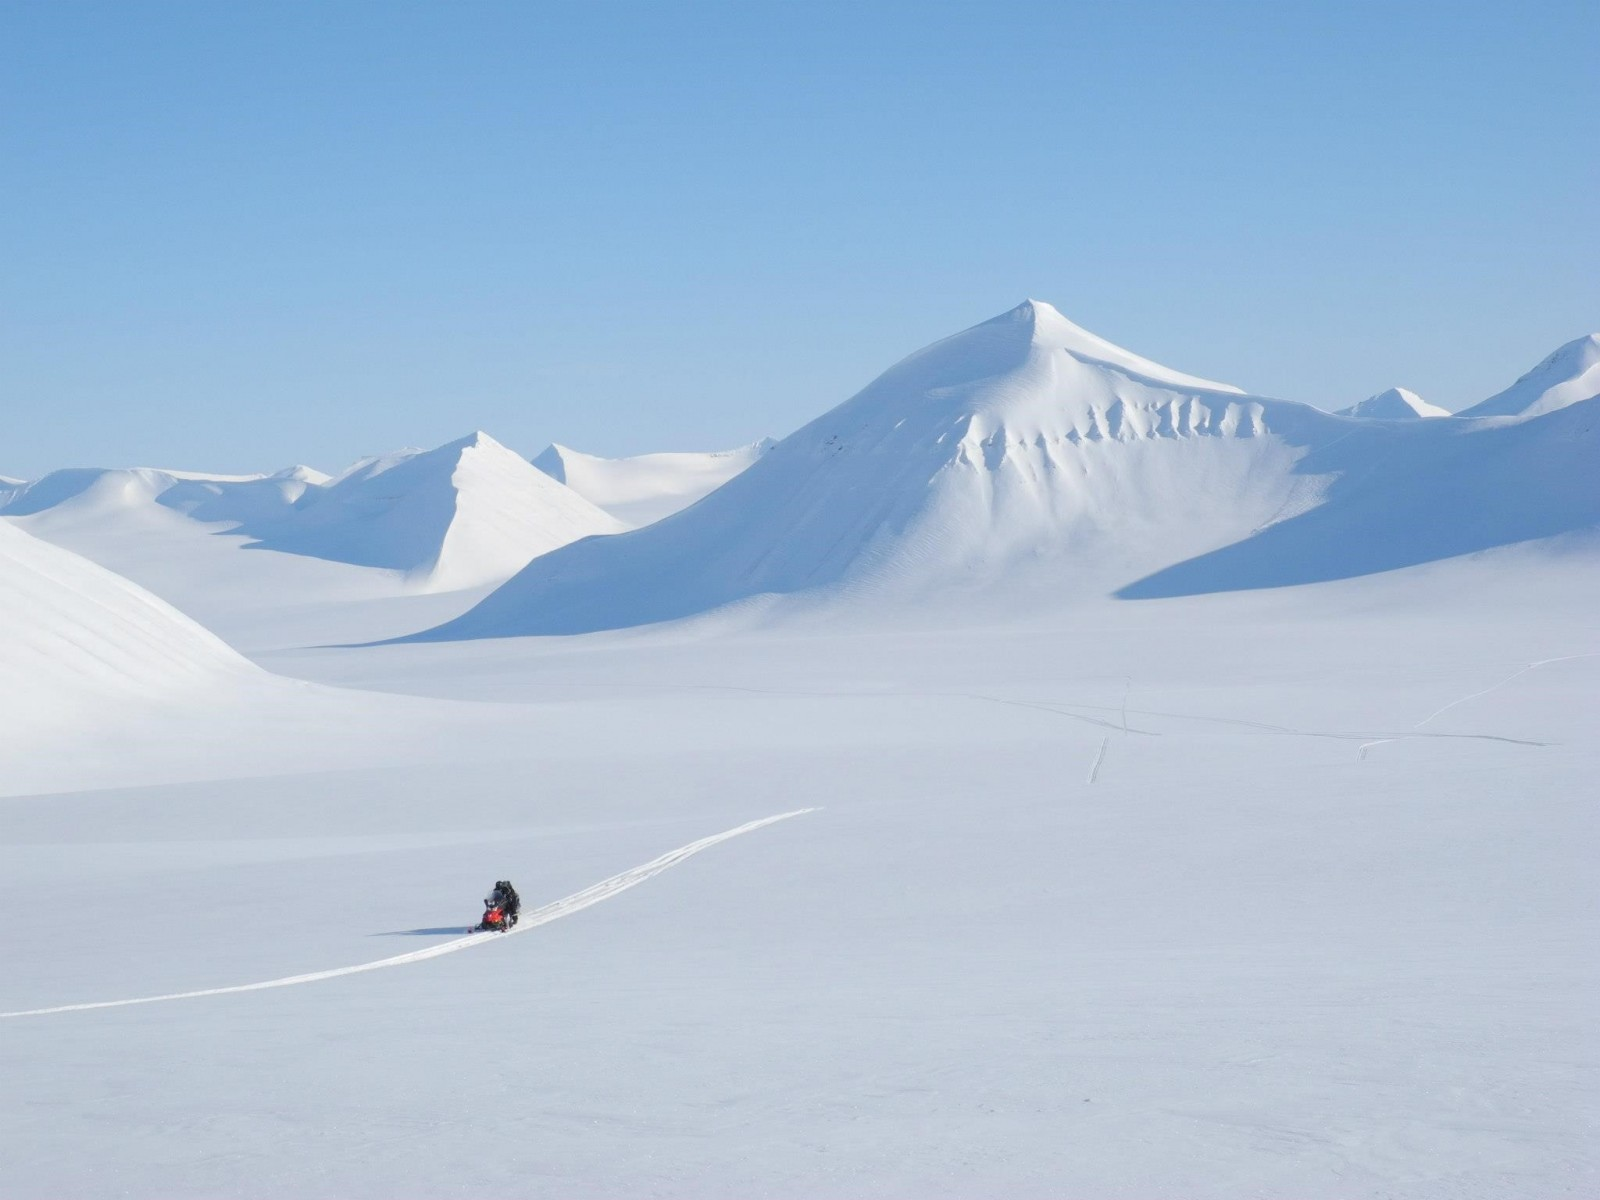 Driving in straight lines on a glacier in Svalbard = collecting GPR data (credits: Nick Hulton).